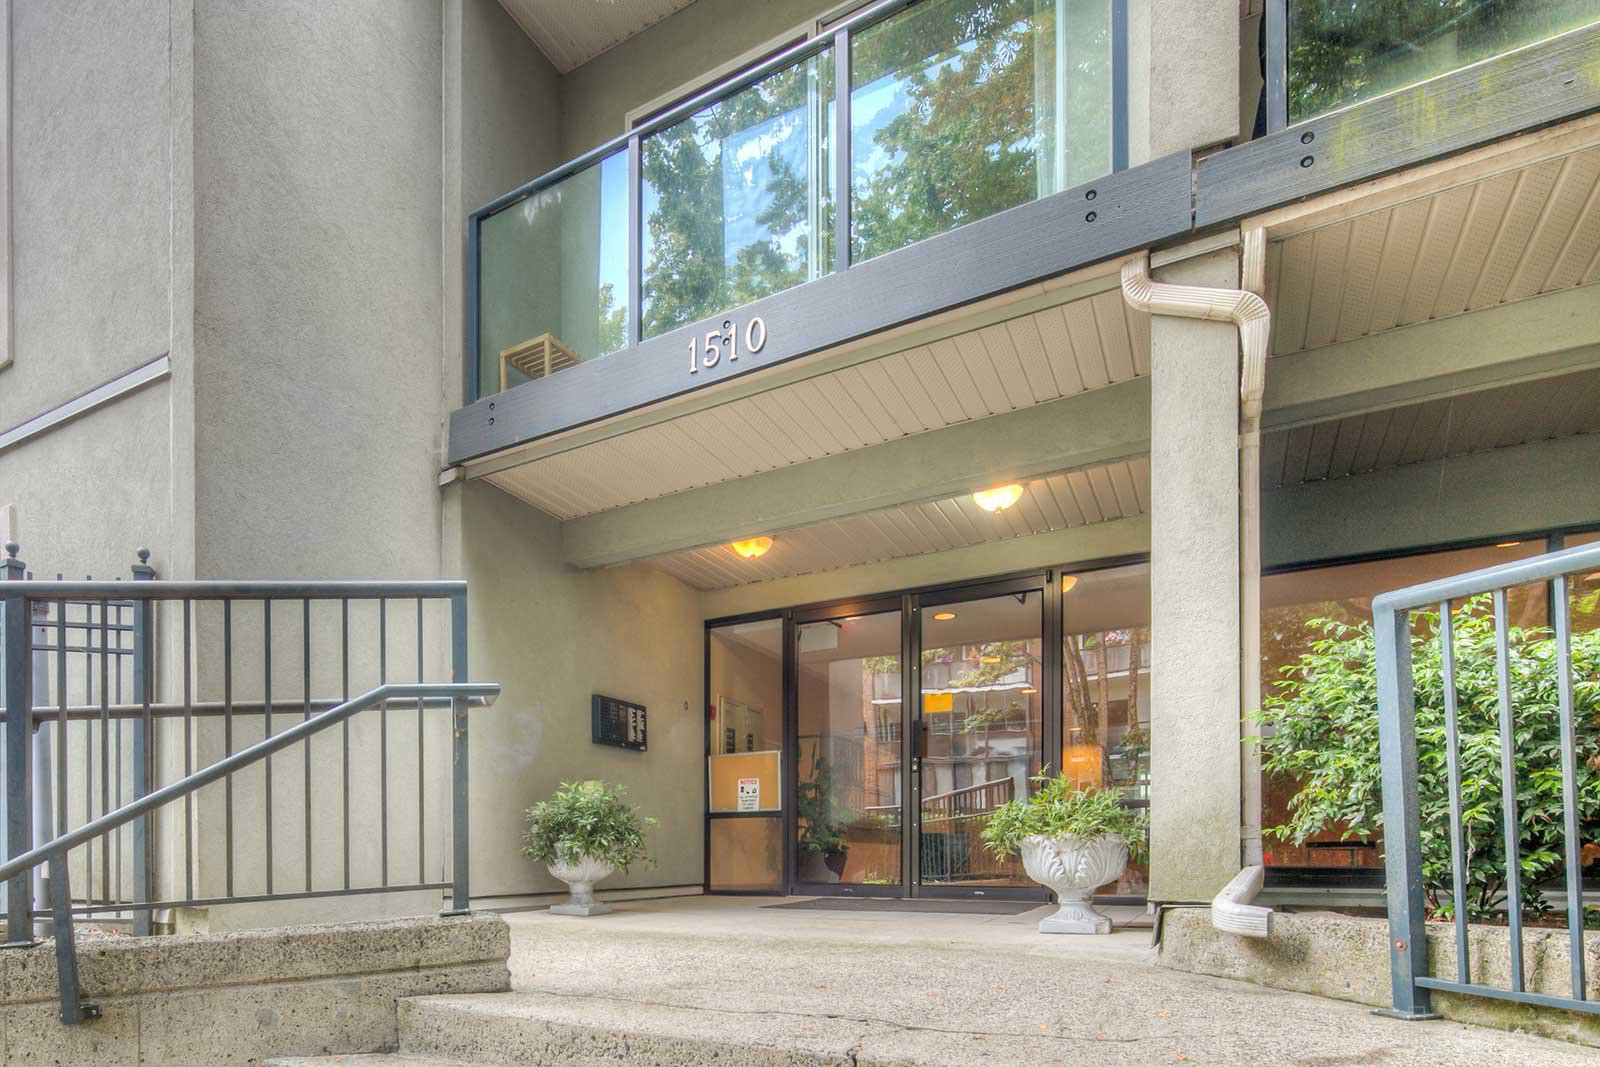 Ashbury Place at 1510 Nelson St, Vancouver 0